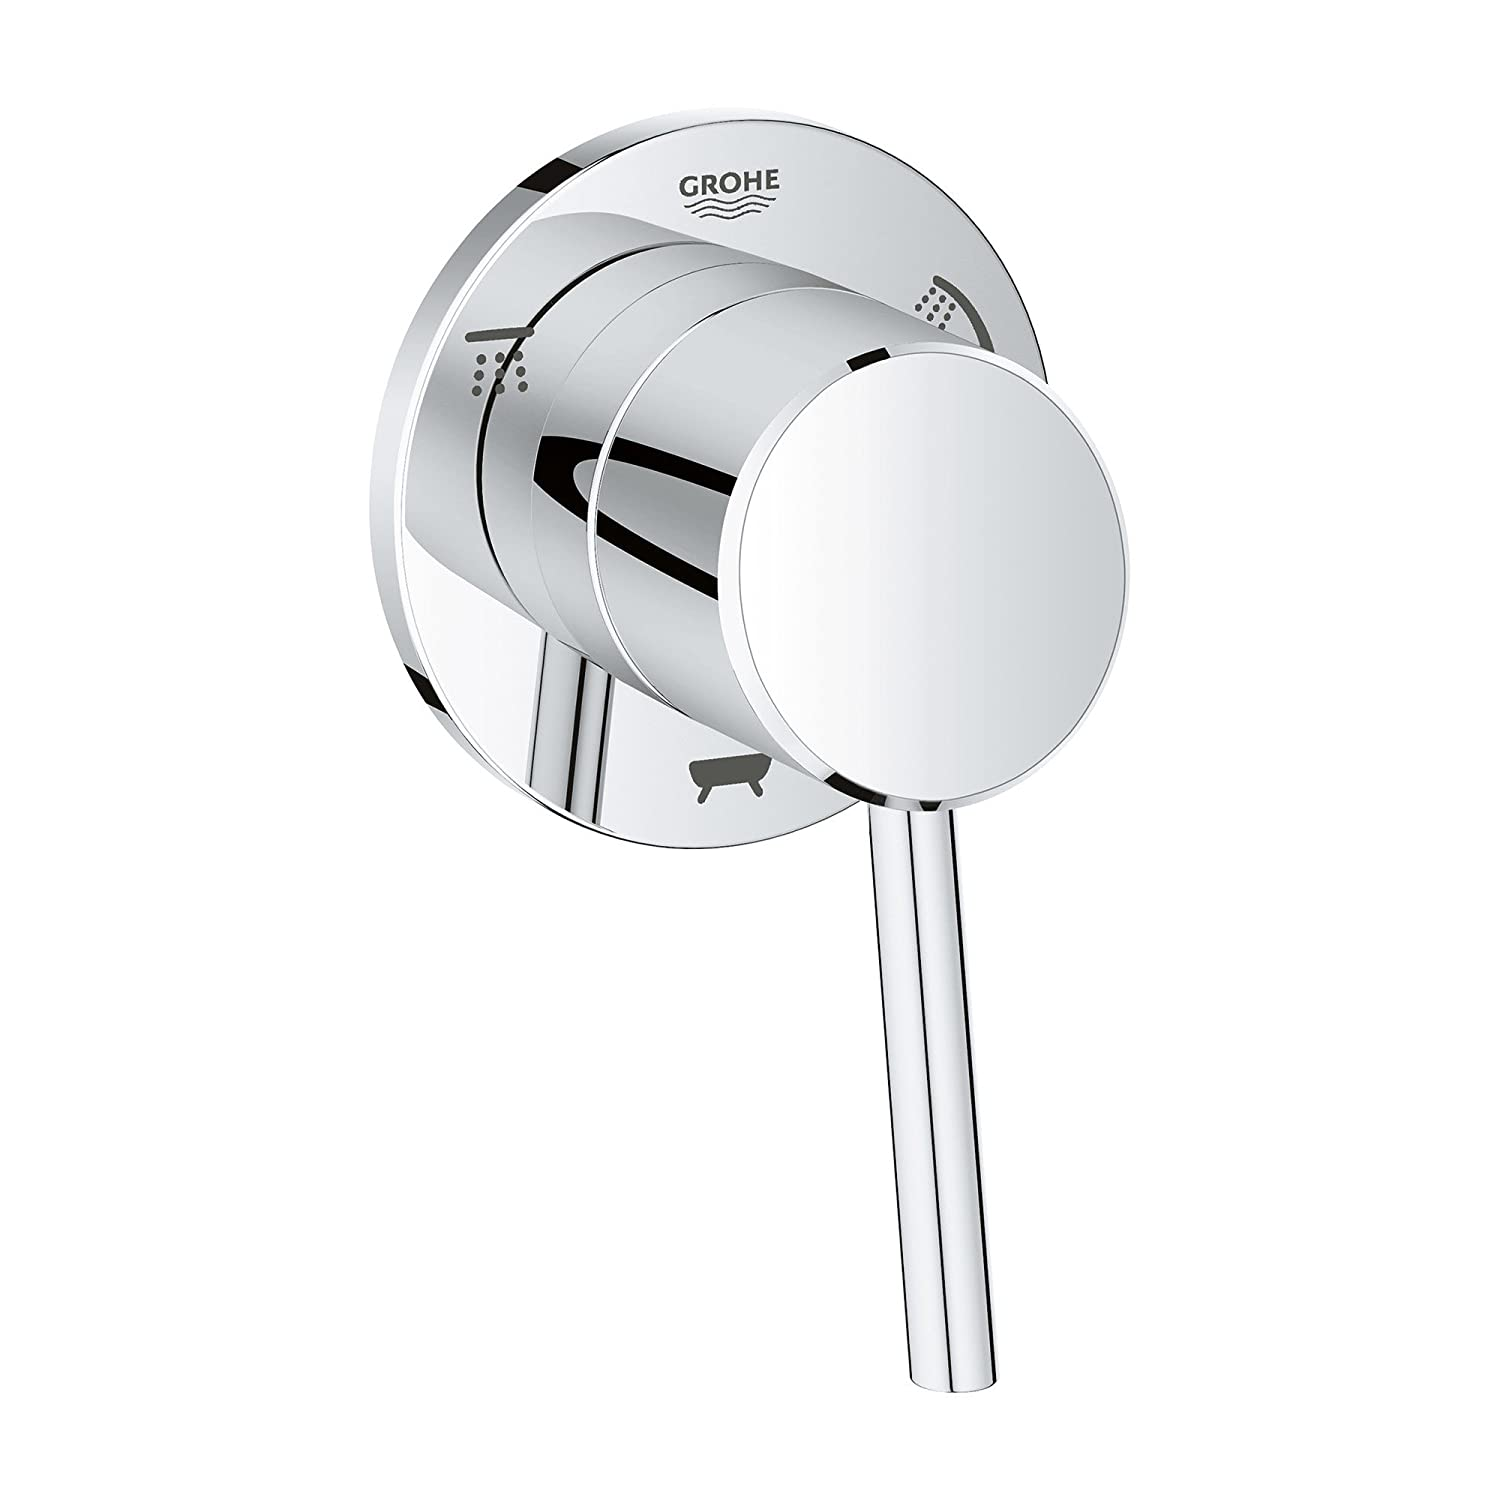 GROHE 29106001 Concetto 1-Handle 3-Way Diverter Valve Only Trim Kit In Starlight Chrome (Valve Sold Separately)